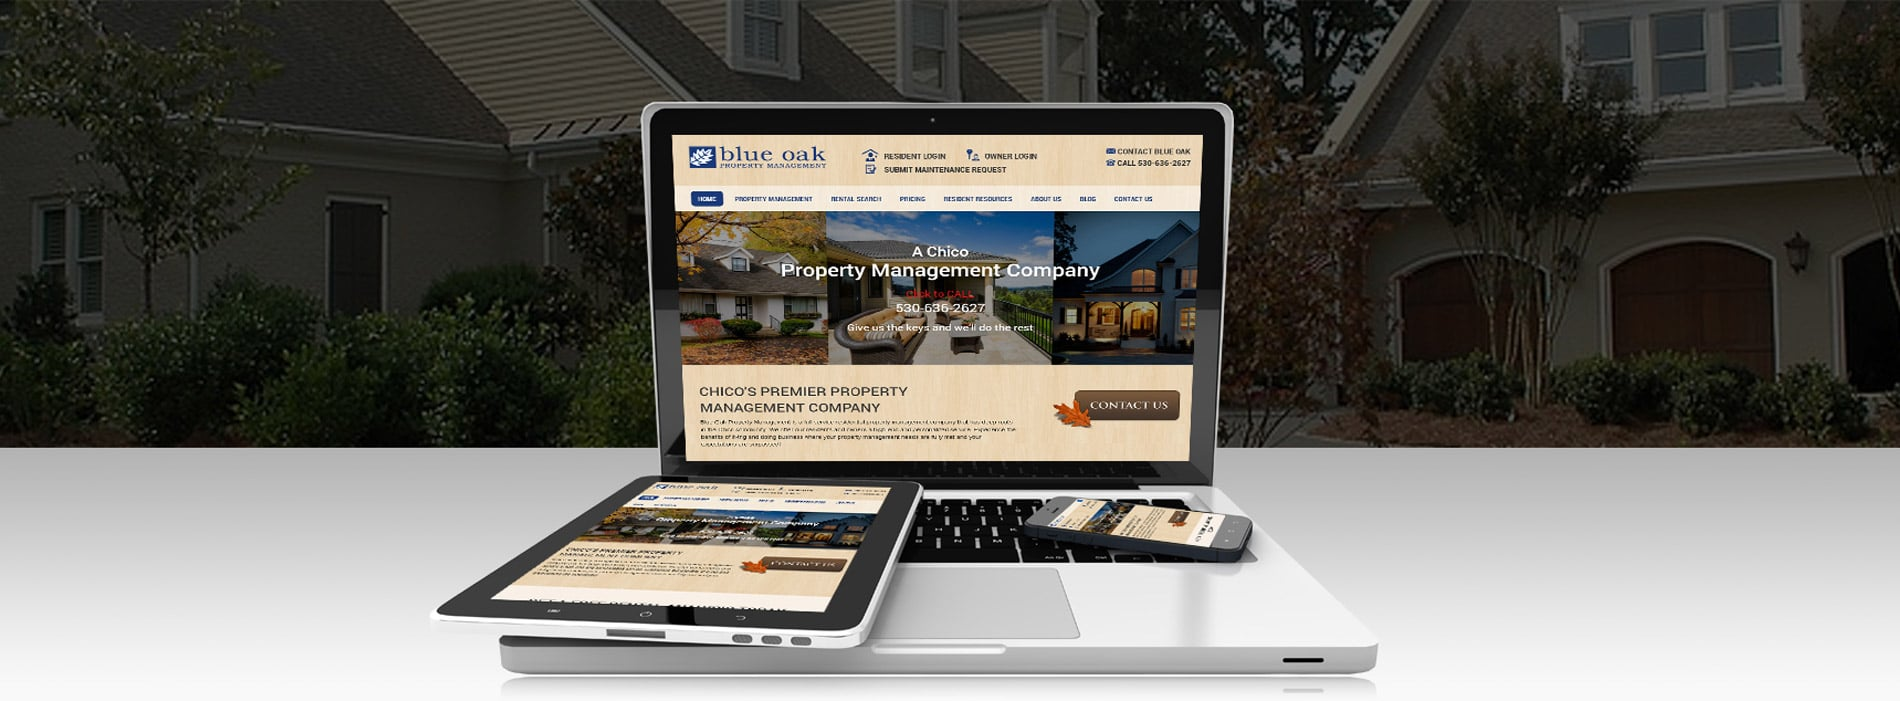 Blue Oak Property Management, Inc.